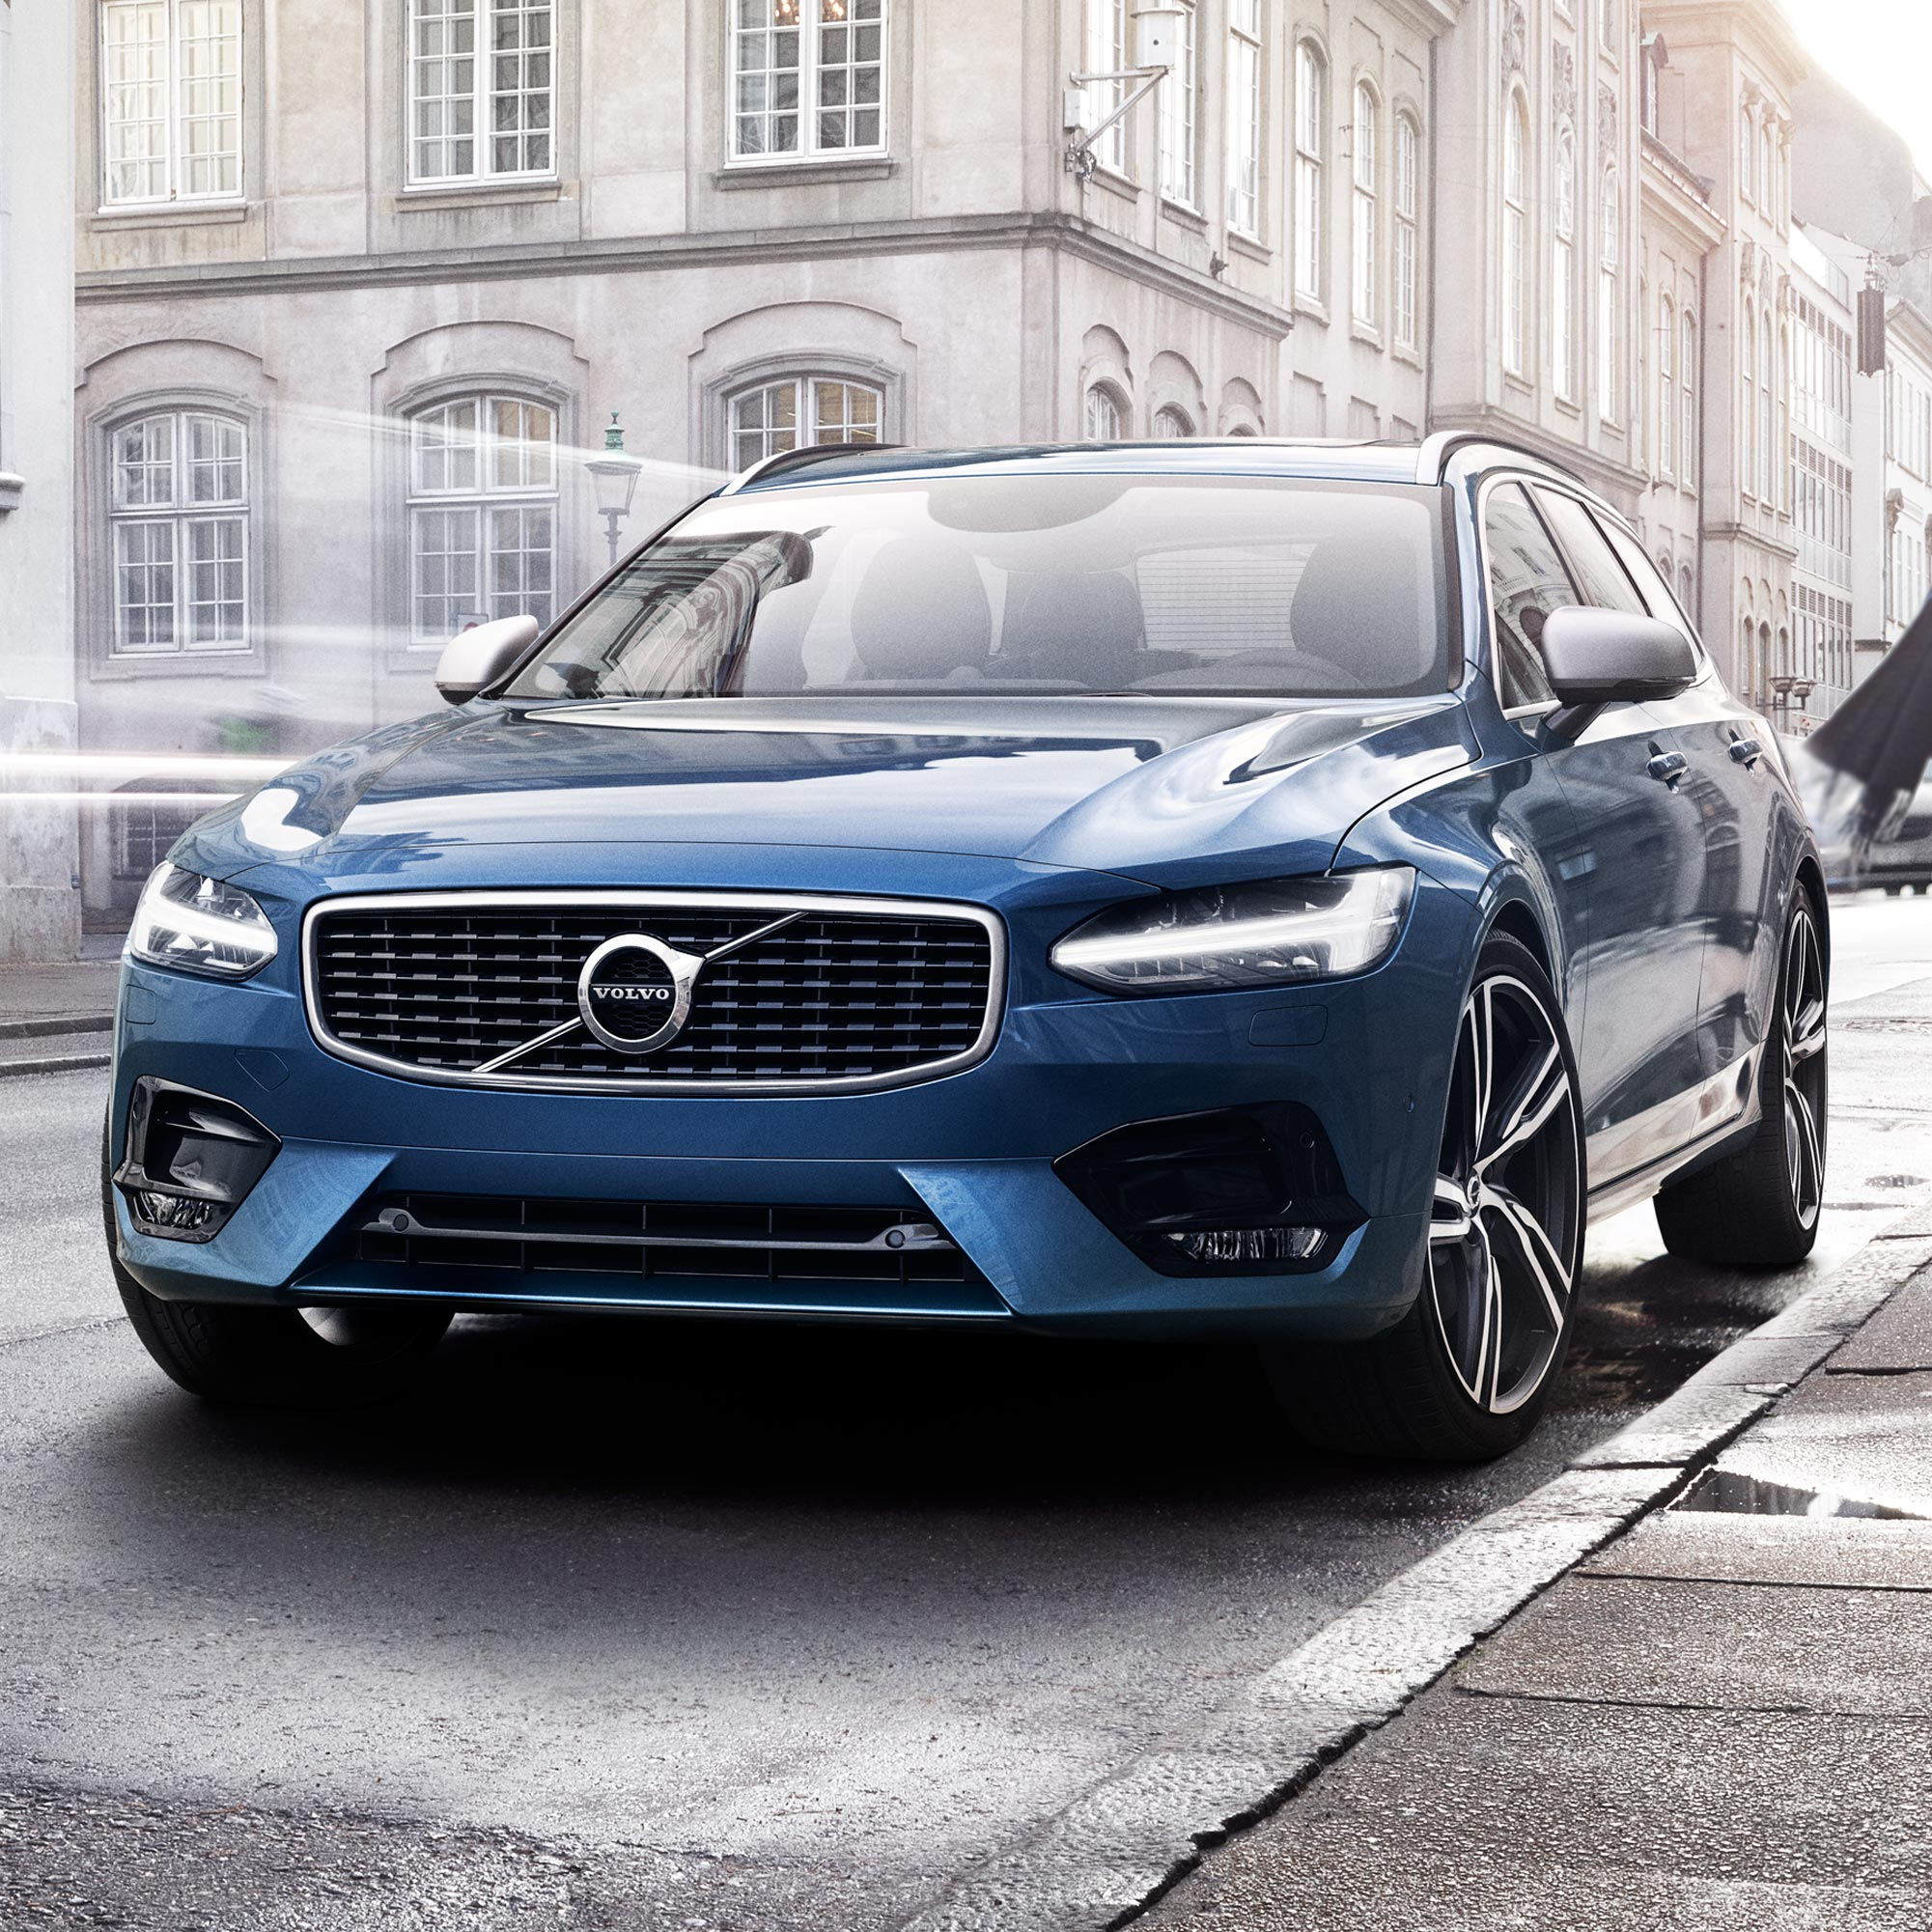 2019 Volvo V90 Cross Country: Volvo Overseas Ordering & Delivery In Scottsdale Arizona